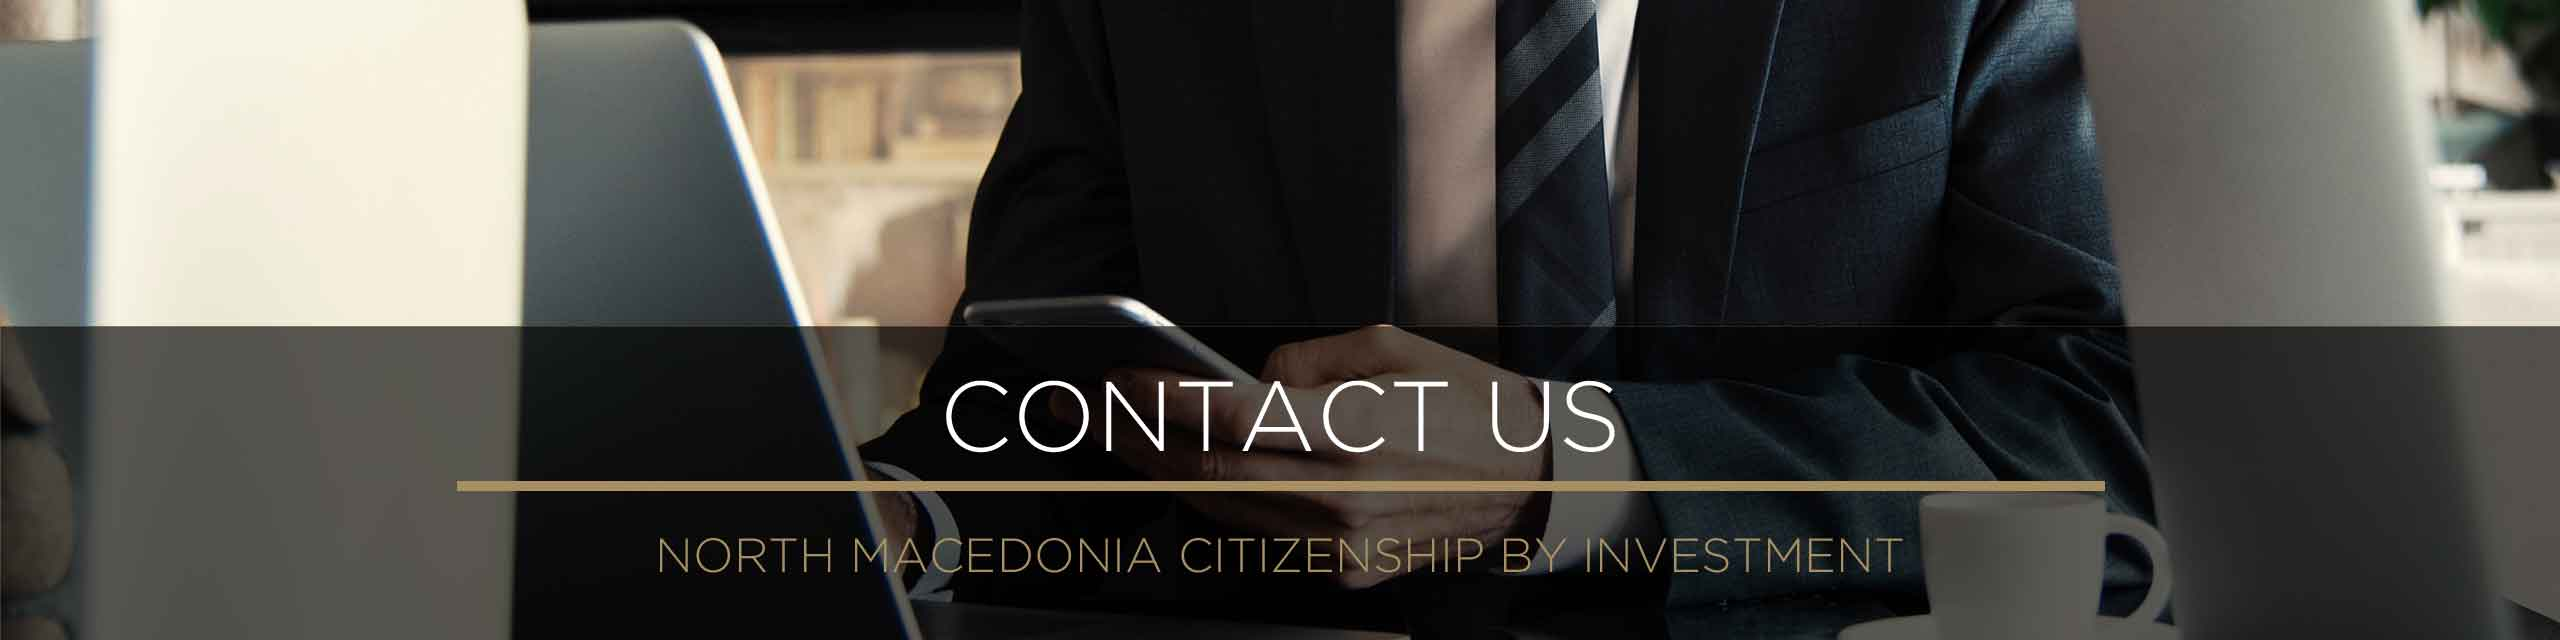 Contact Details of GCI - Global Citizenship Investment